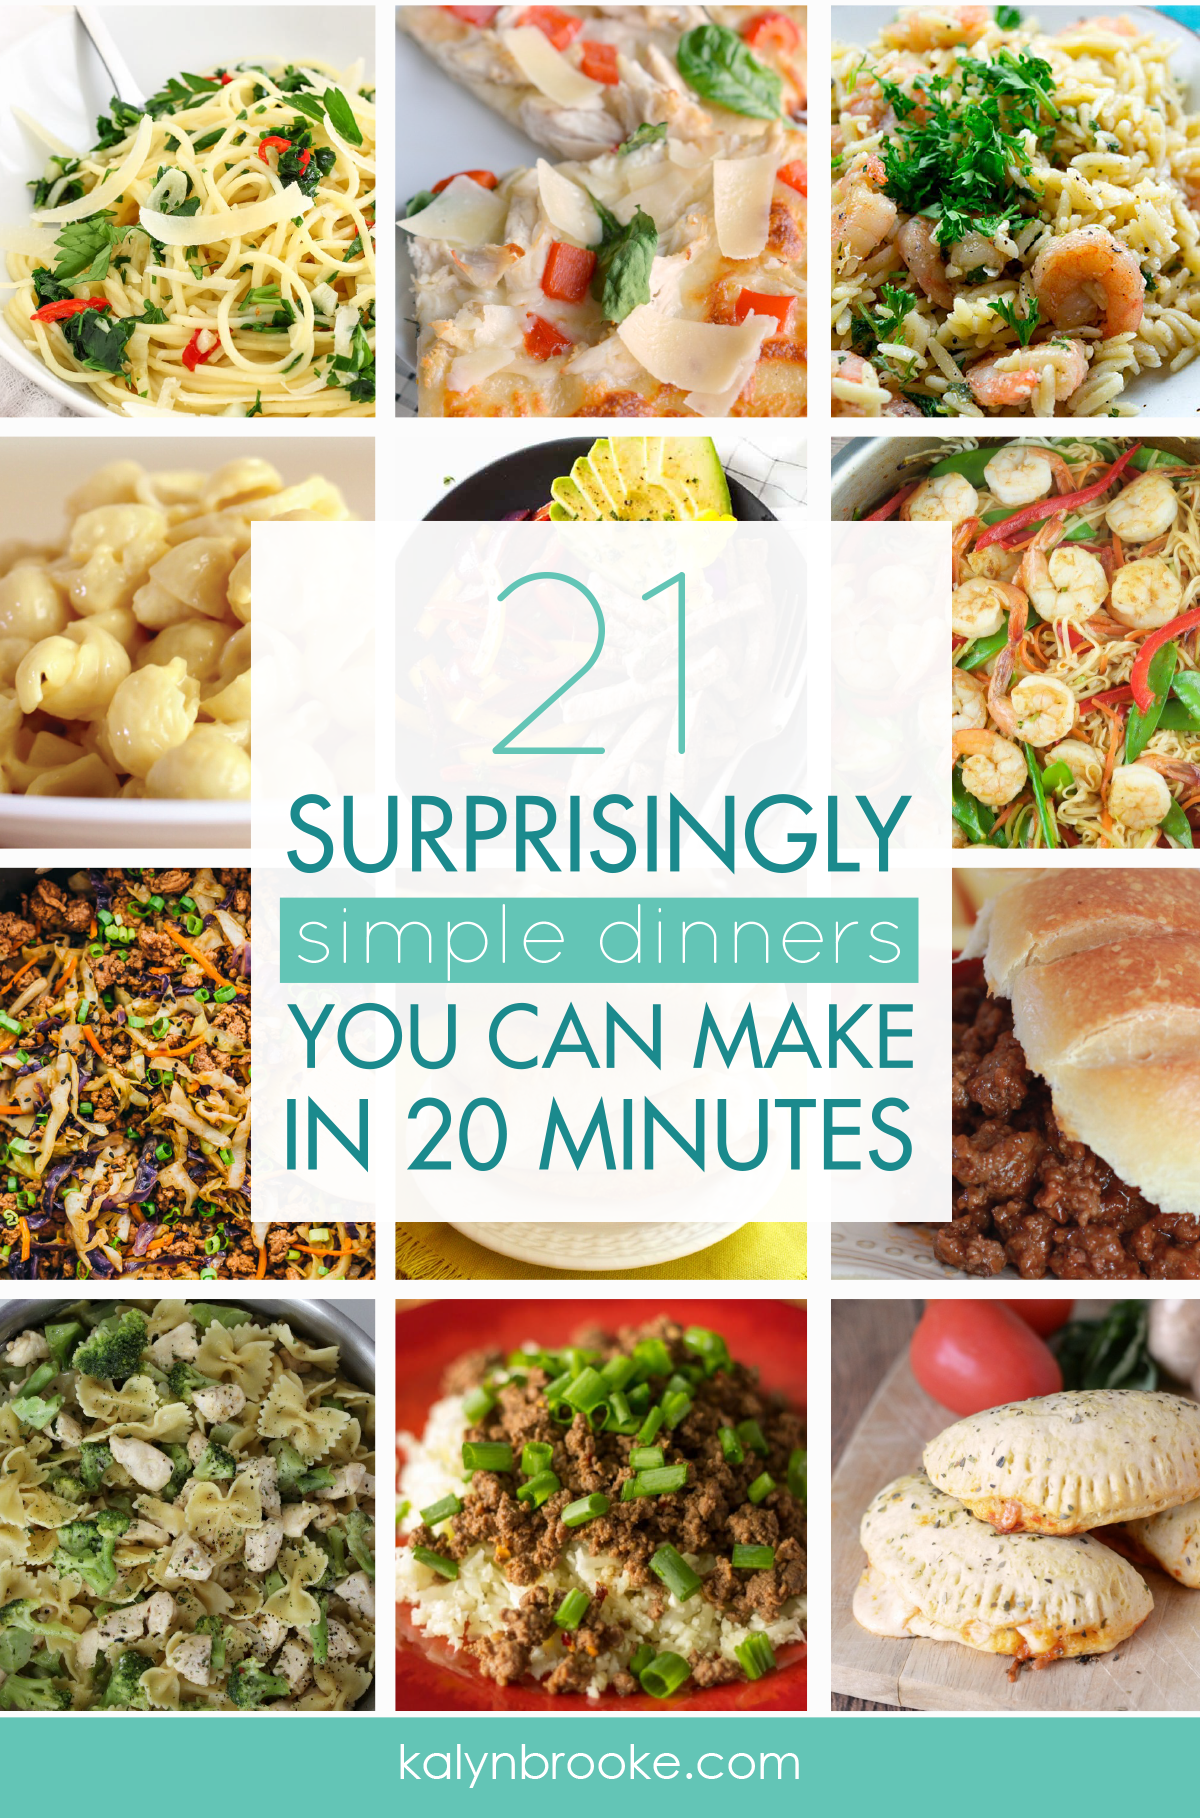 These 21 surprisingly simple dinners are exactly what I needed for my meal planning anxiety. Personally, I HATE meal planning. BUT it really is the best way to save time in the kitchen and get rid of unnecessary last minute trips to the grocery store. So I try to make it easier by having a good list of great tasting, easy recipes that I can repeat over and over! #simpledinners #quickdinners #easydinnerrecipes #easydinners #weeknightdinnerrecipes